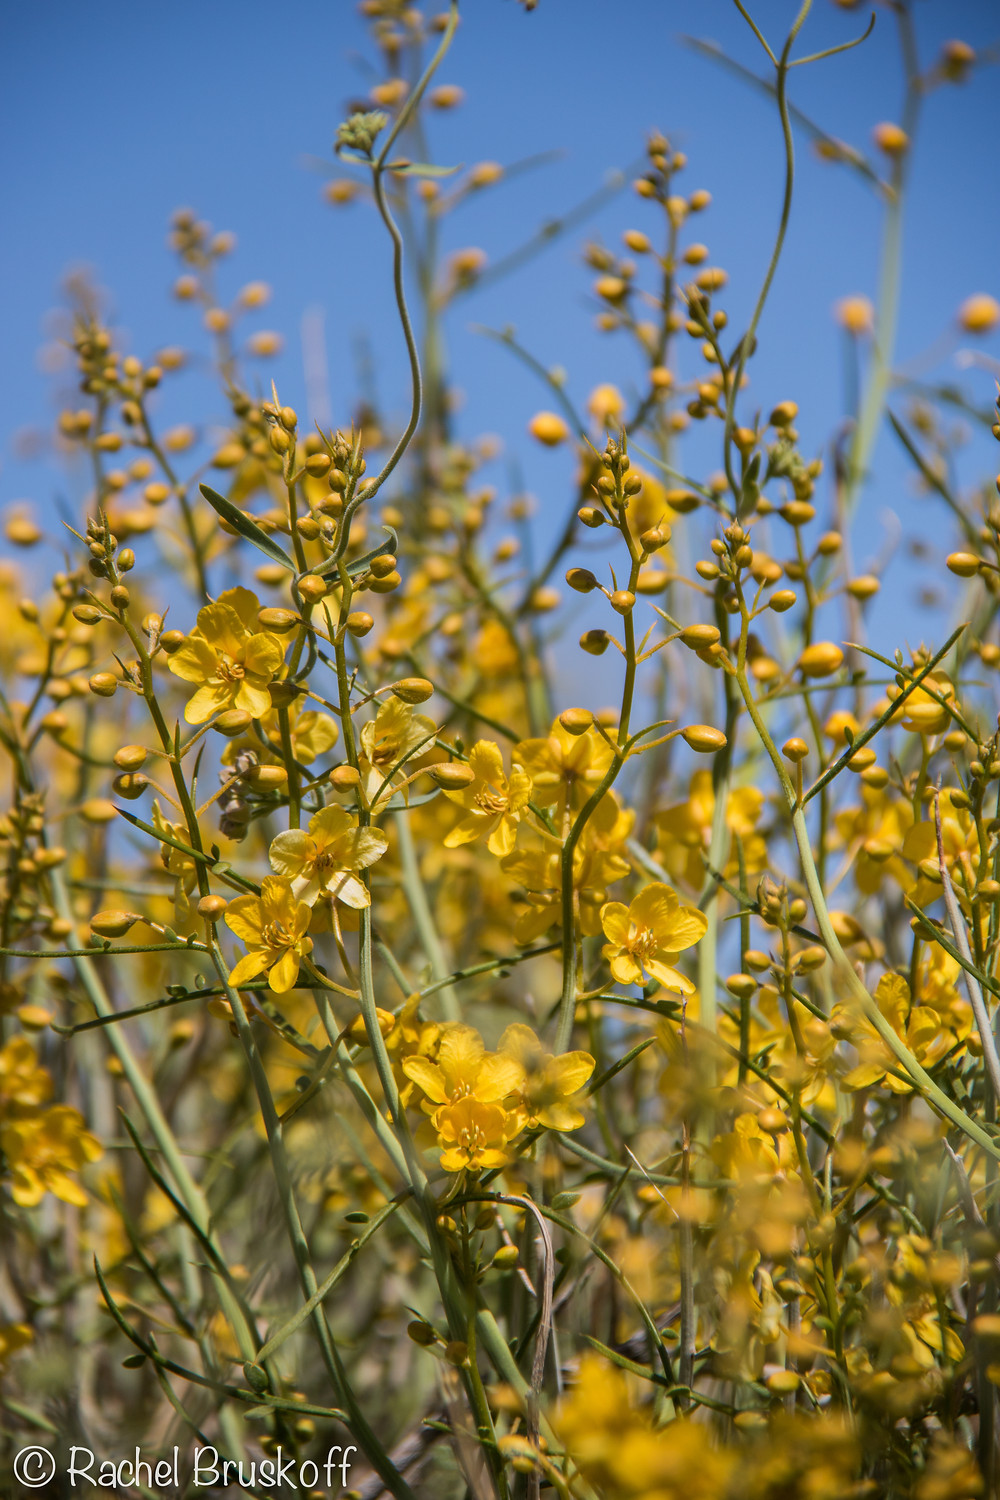 A closeup of some of the yellow wildflowers.